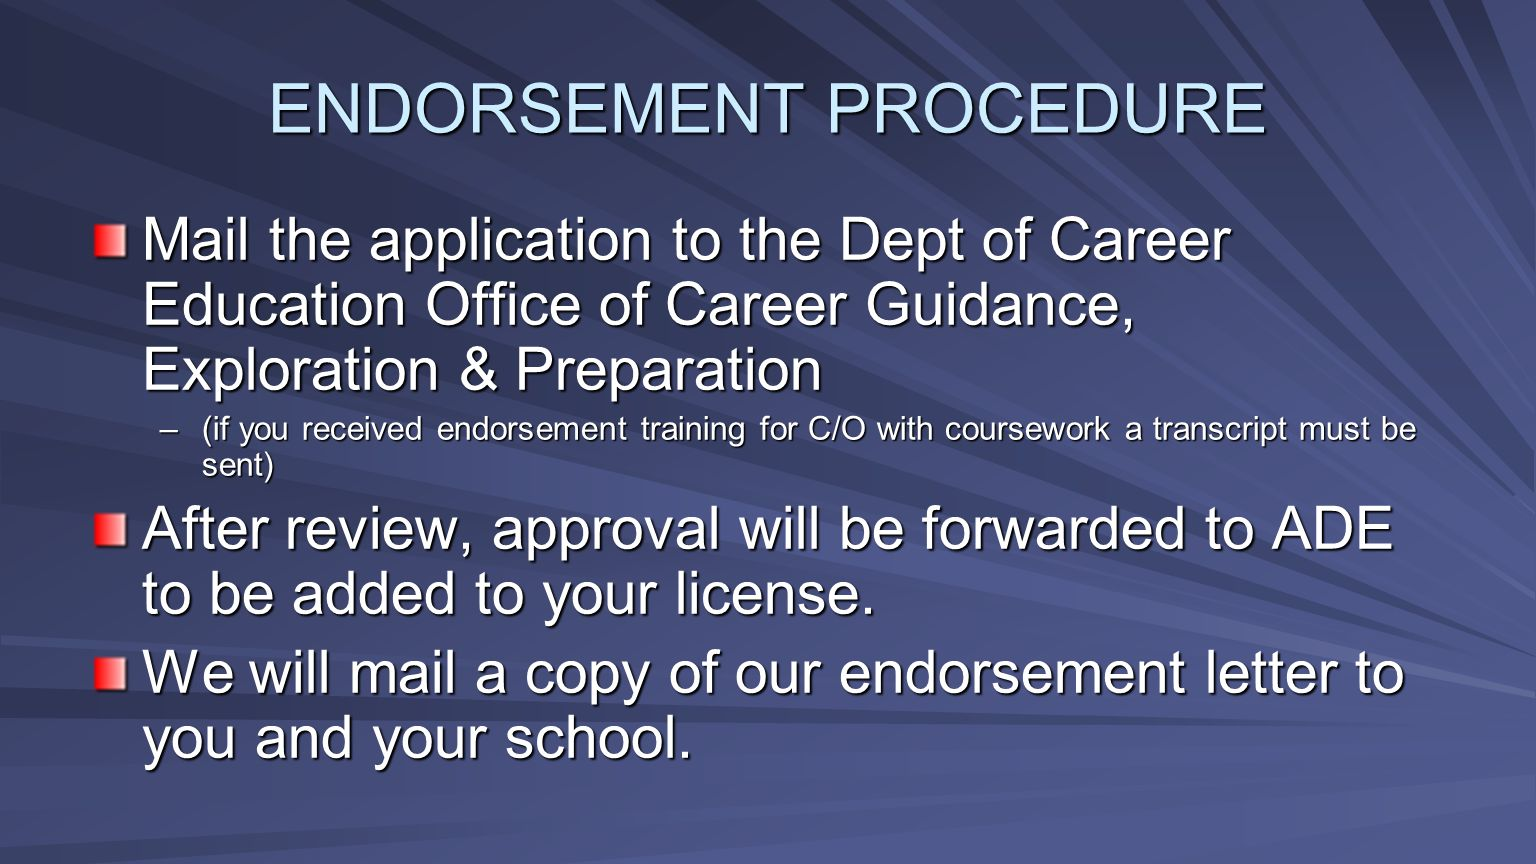 Mail the application to the Dept of Career Education Office of Career Guidance, Exploration & Preparation –(if you received endorsement training for C/O with coursework a transcript must be sent) After review, approval will be forwarded to ADE to be added to your license.